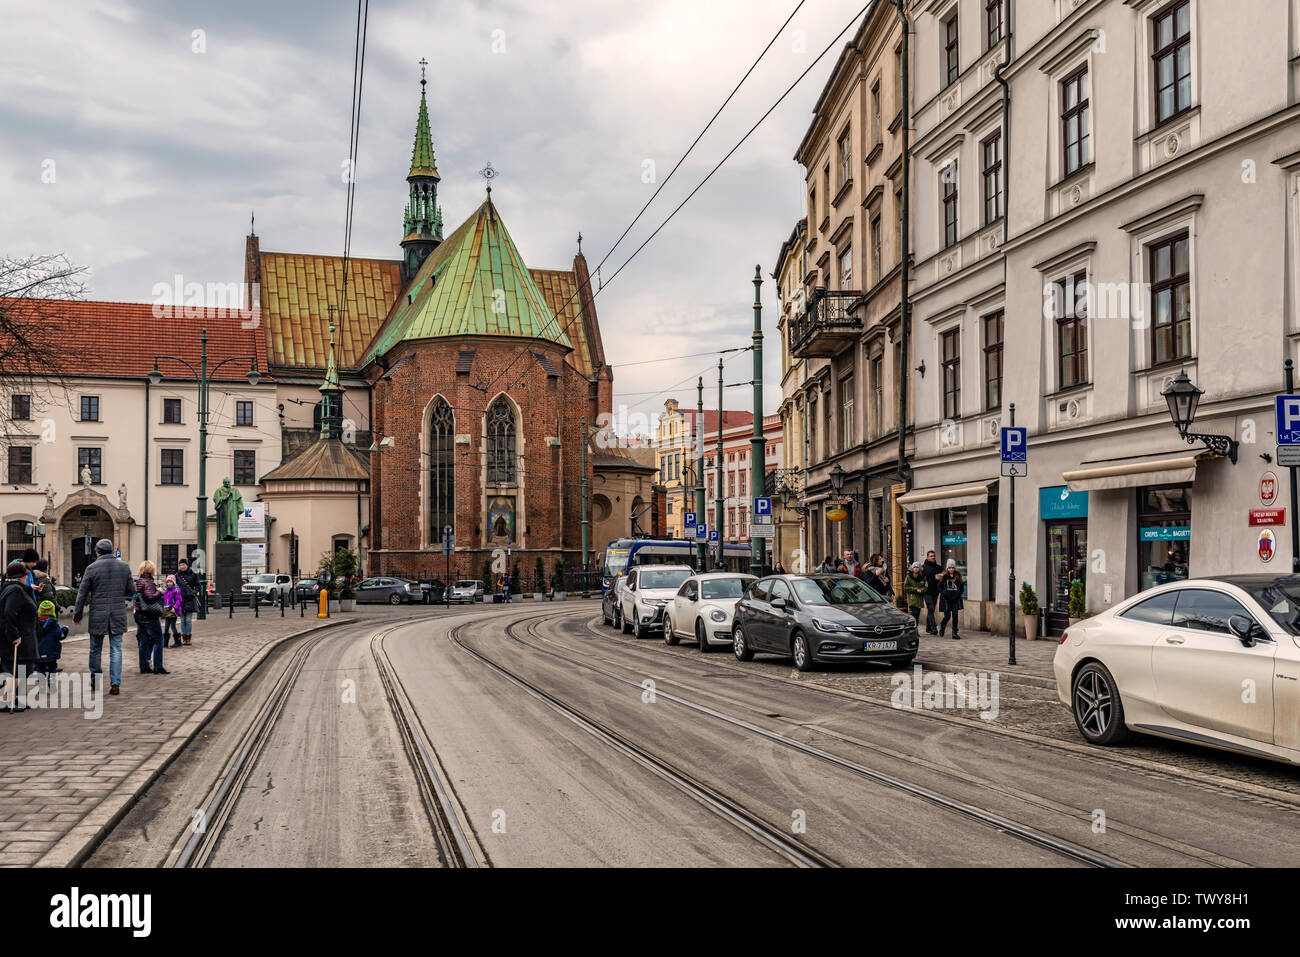 Cracow, Poland - Feb 2, 2019: View at the street leading to the Franciscan Church Crakow Poland. - Stock Image